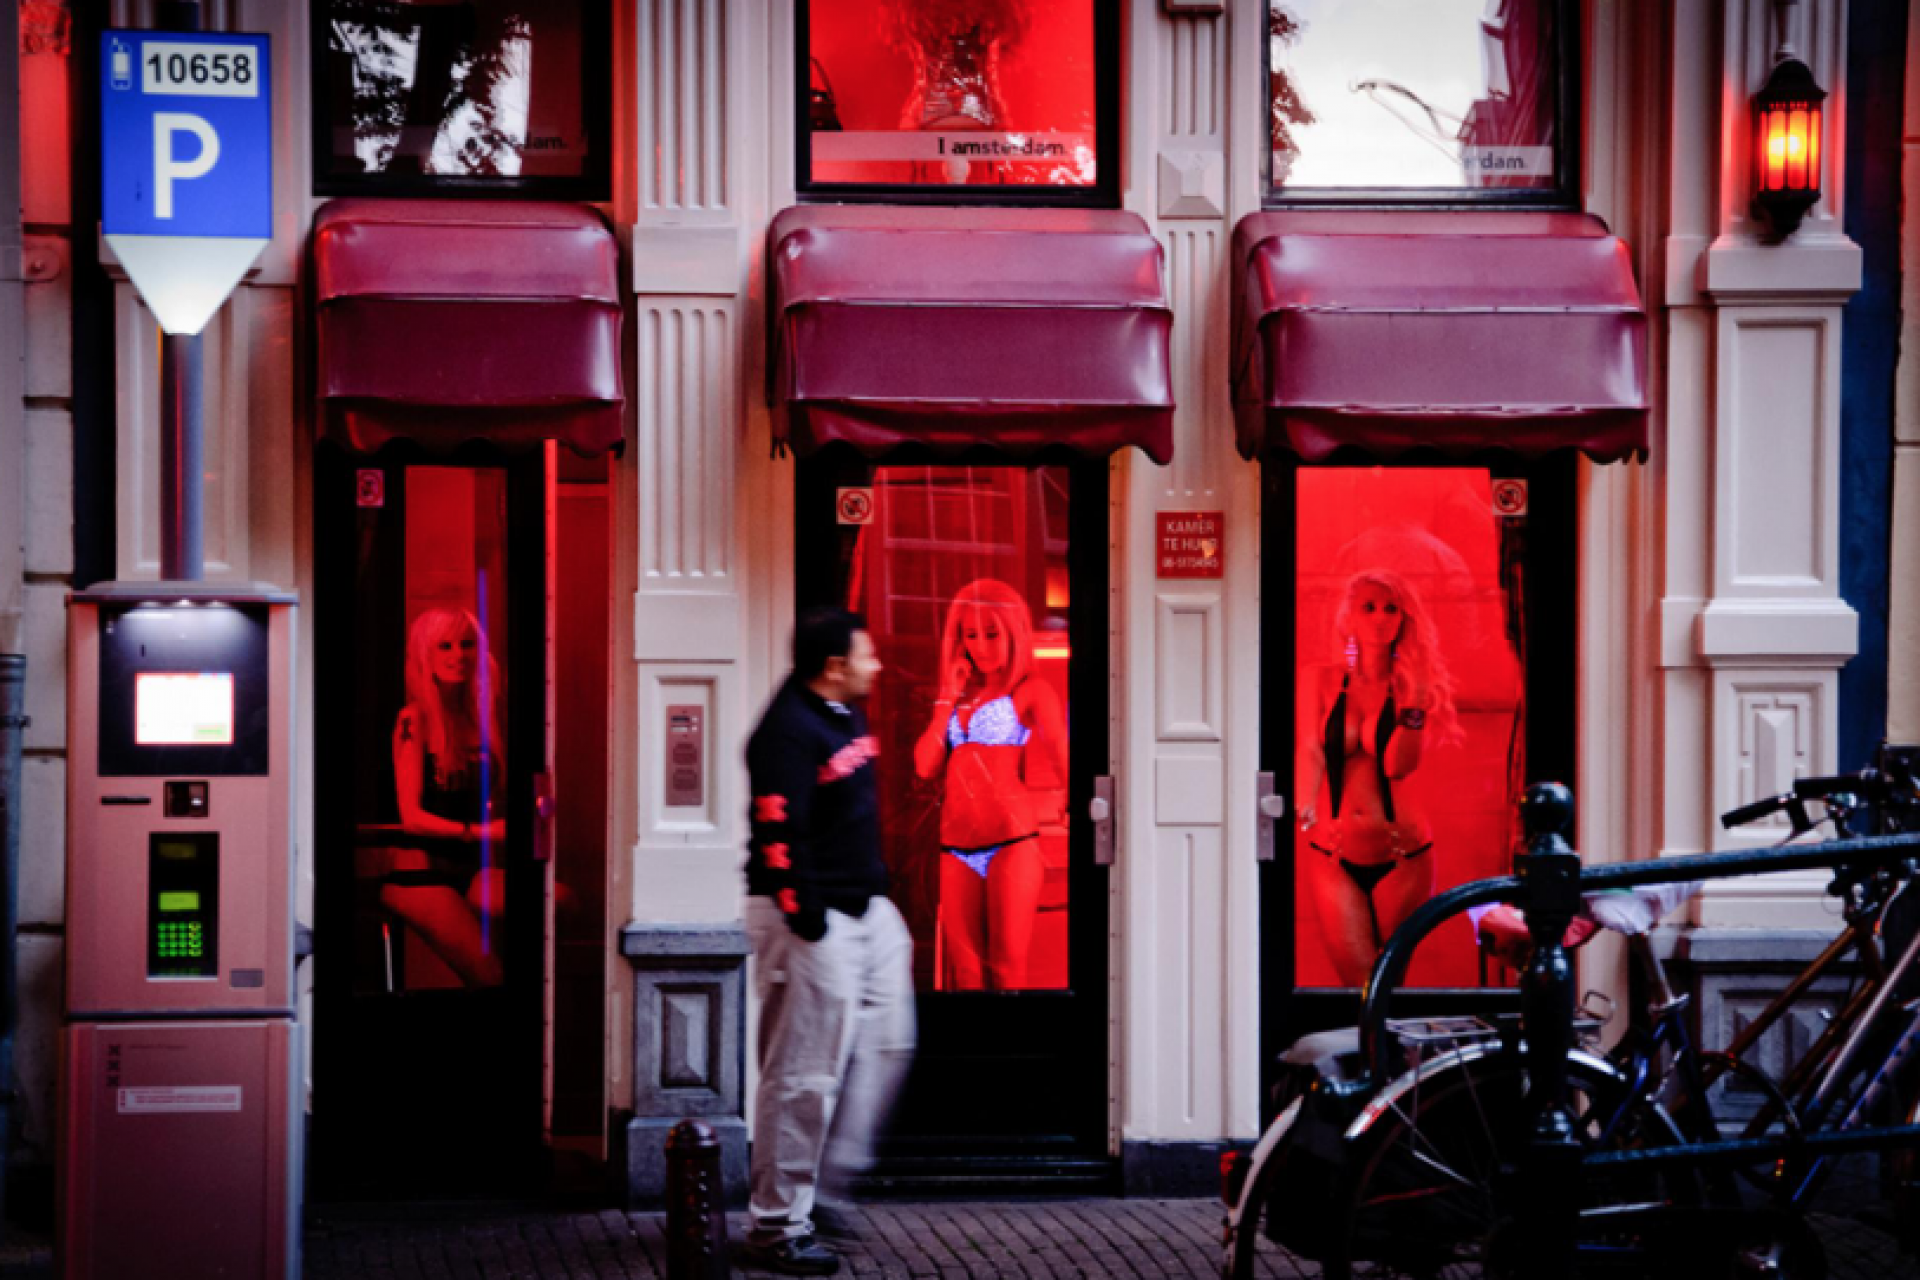 Amsterdam authorities have announced the dissolution of the red light district